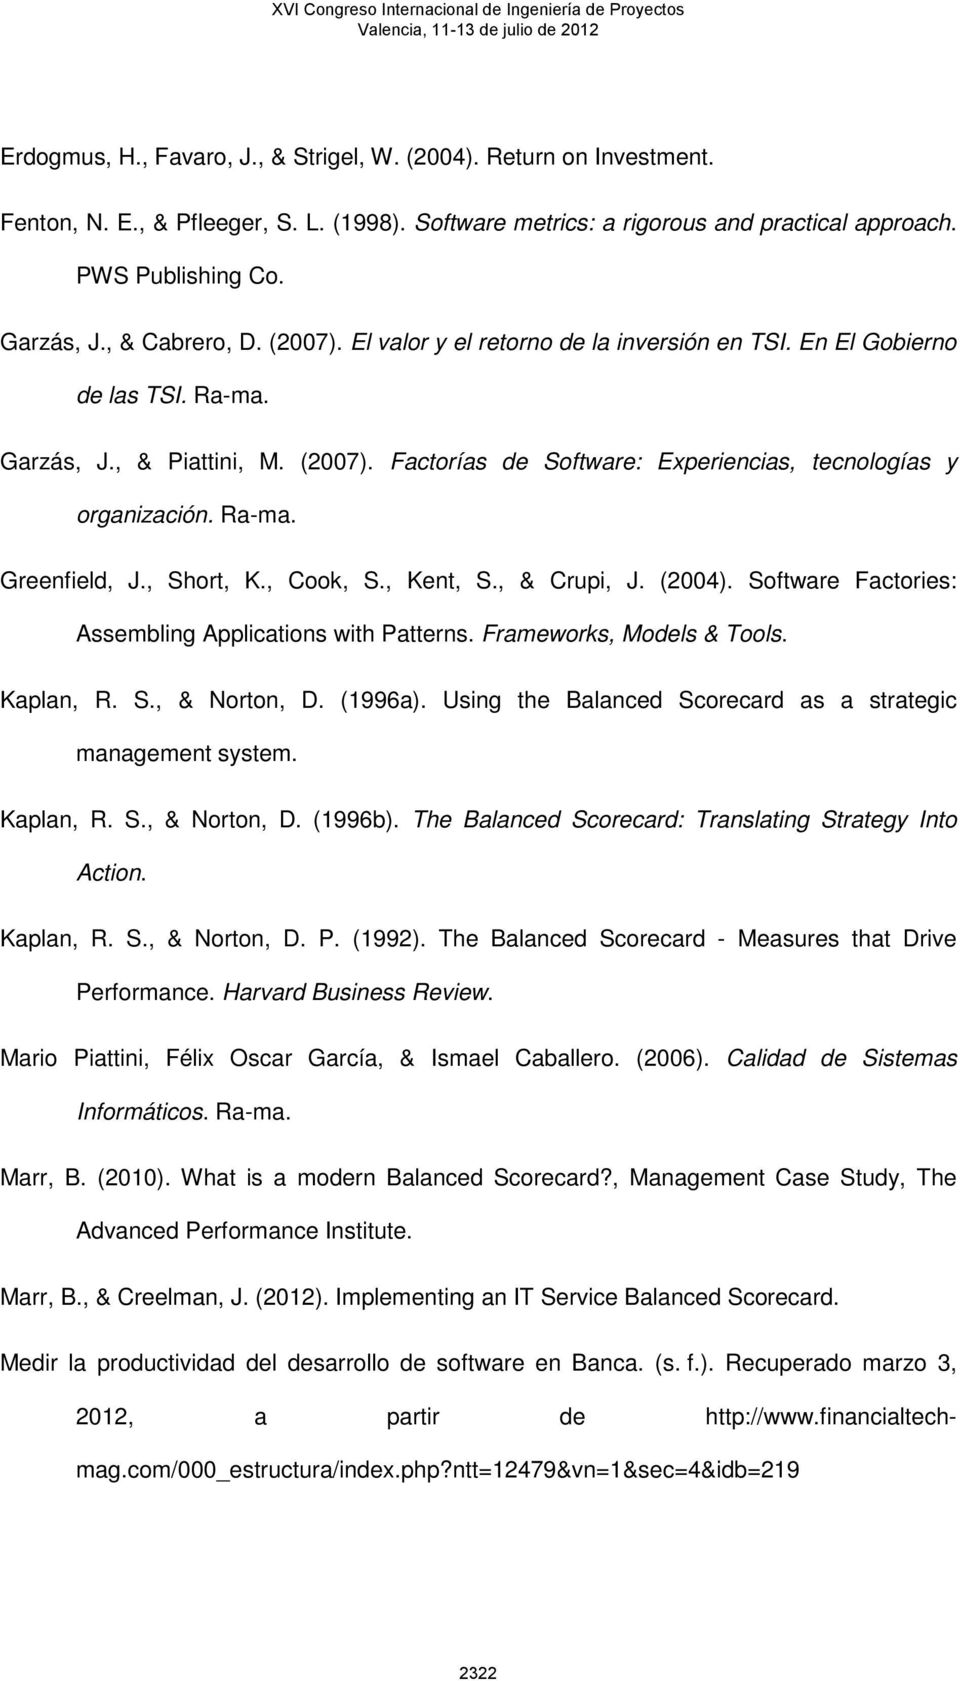 Ra-ma. Greenfield, J., Short, K., Cook, S., Kent, S., & Crupi, J. (2004). Software Factories: Assembling Applications with Patterns. Frameworks, Models & Tools. Kaplan, R. S., & Norton, D. (1996a).